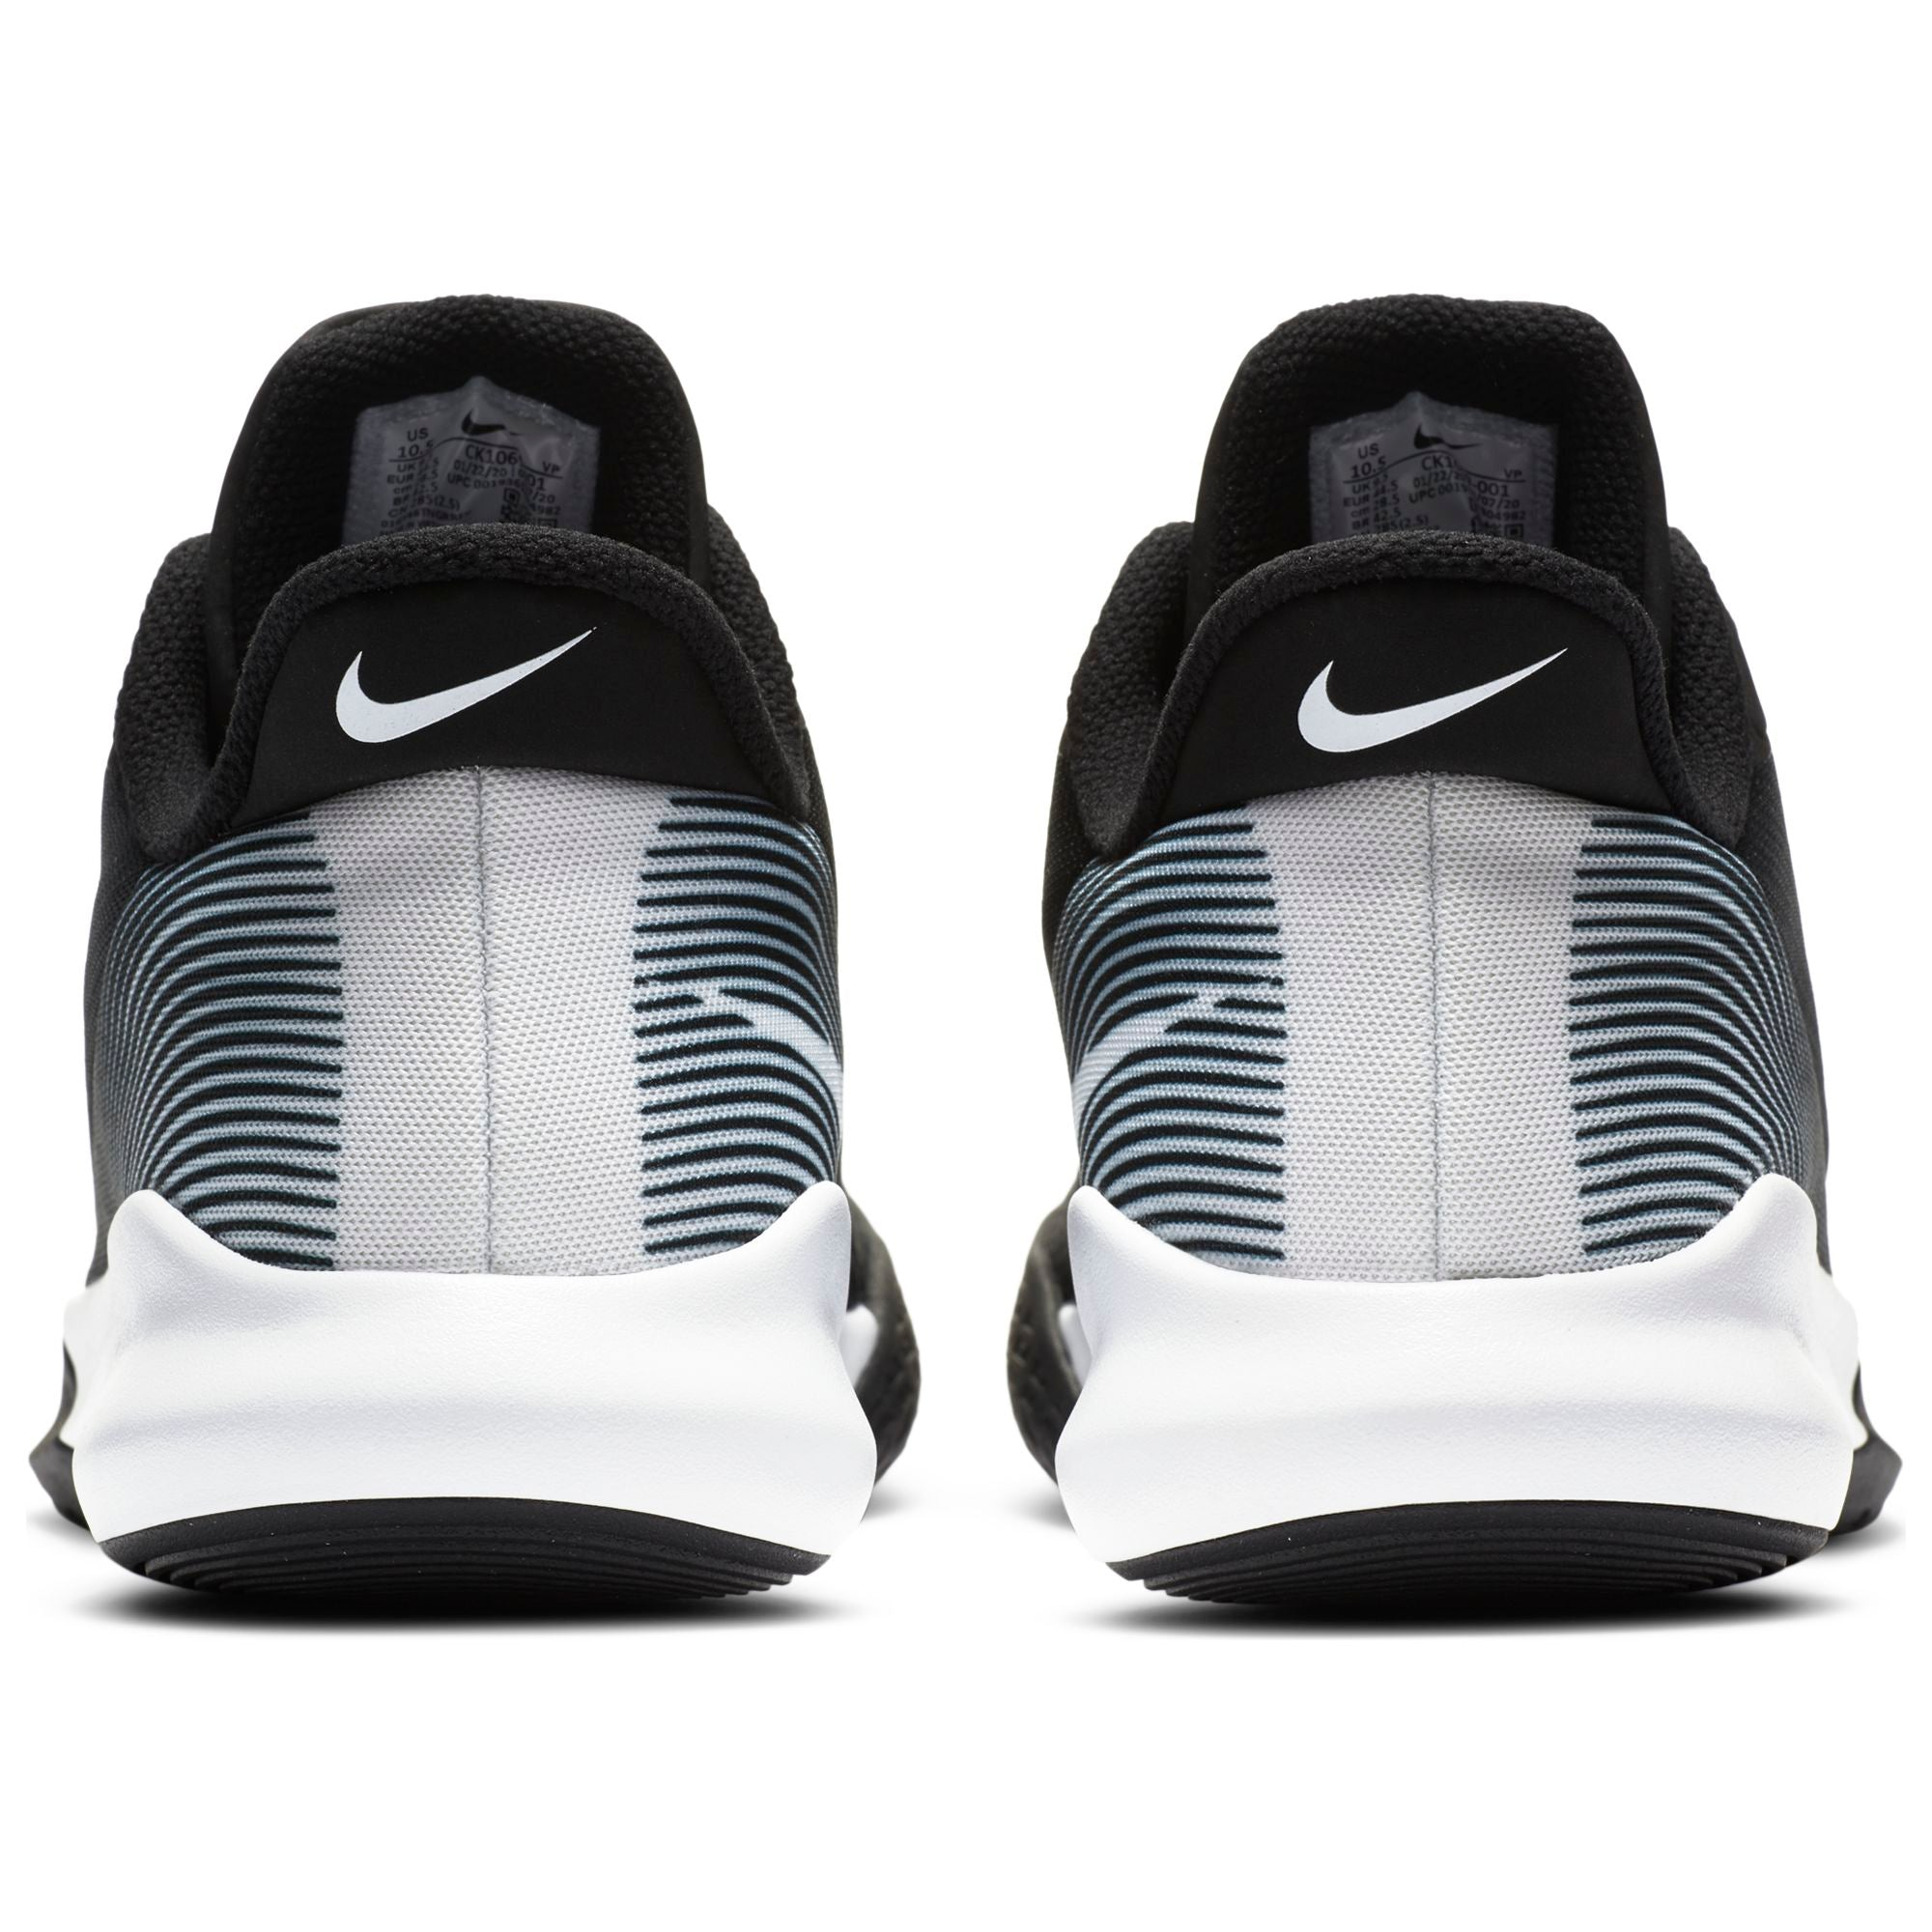 Nike Basketball Precision 4 Shoe - Black/White NK-CK1069-001